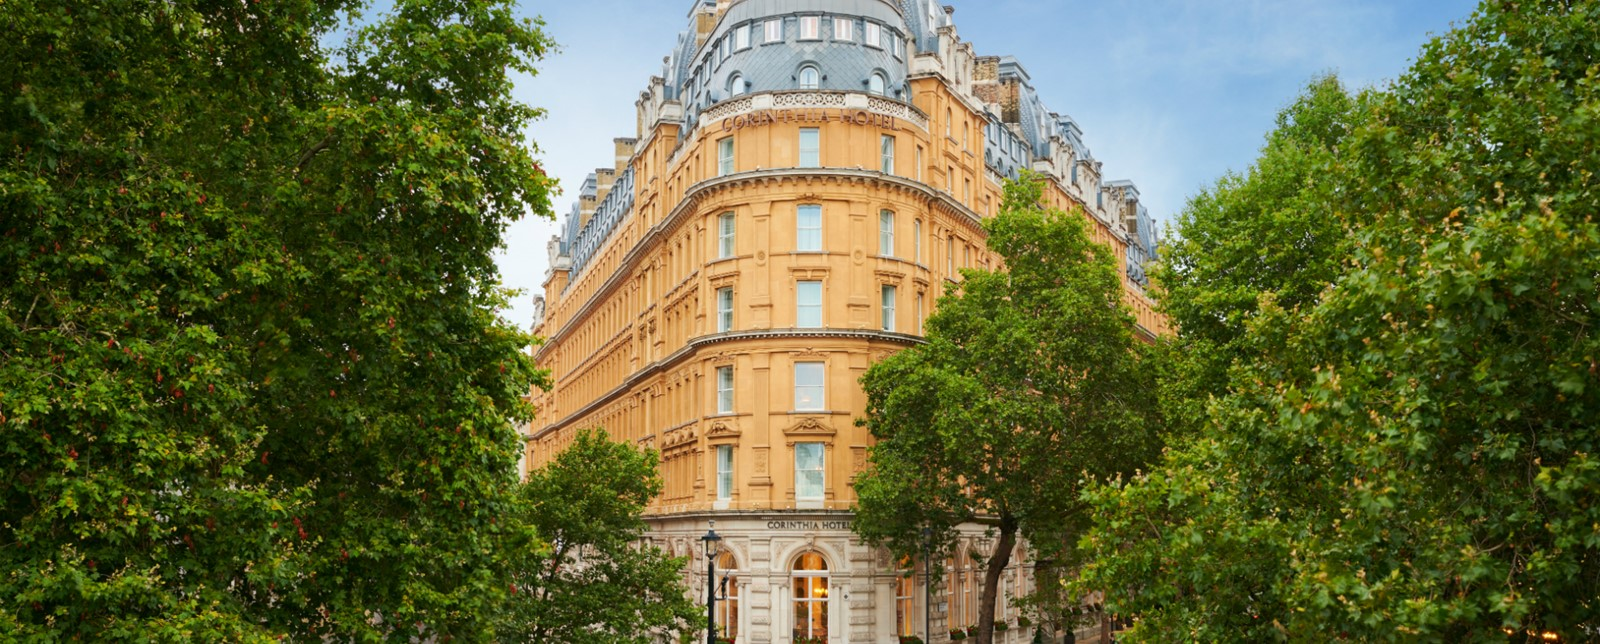 corinthia london exterior sunshine